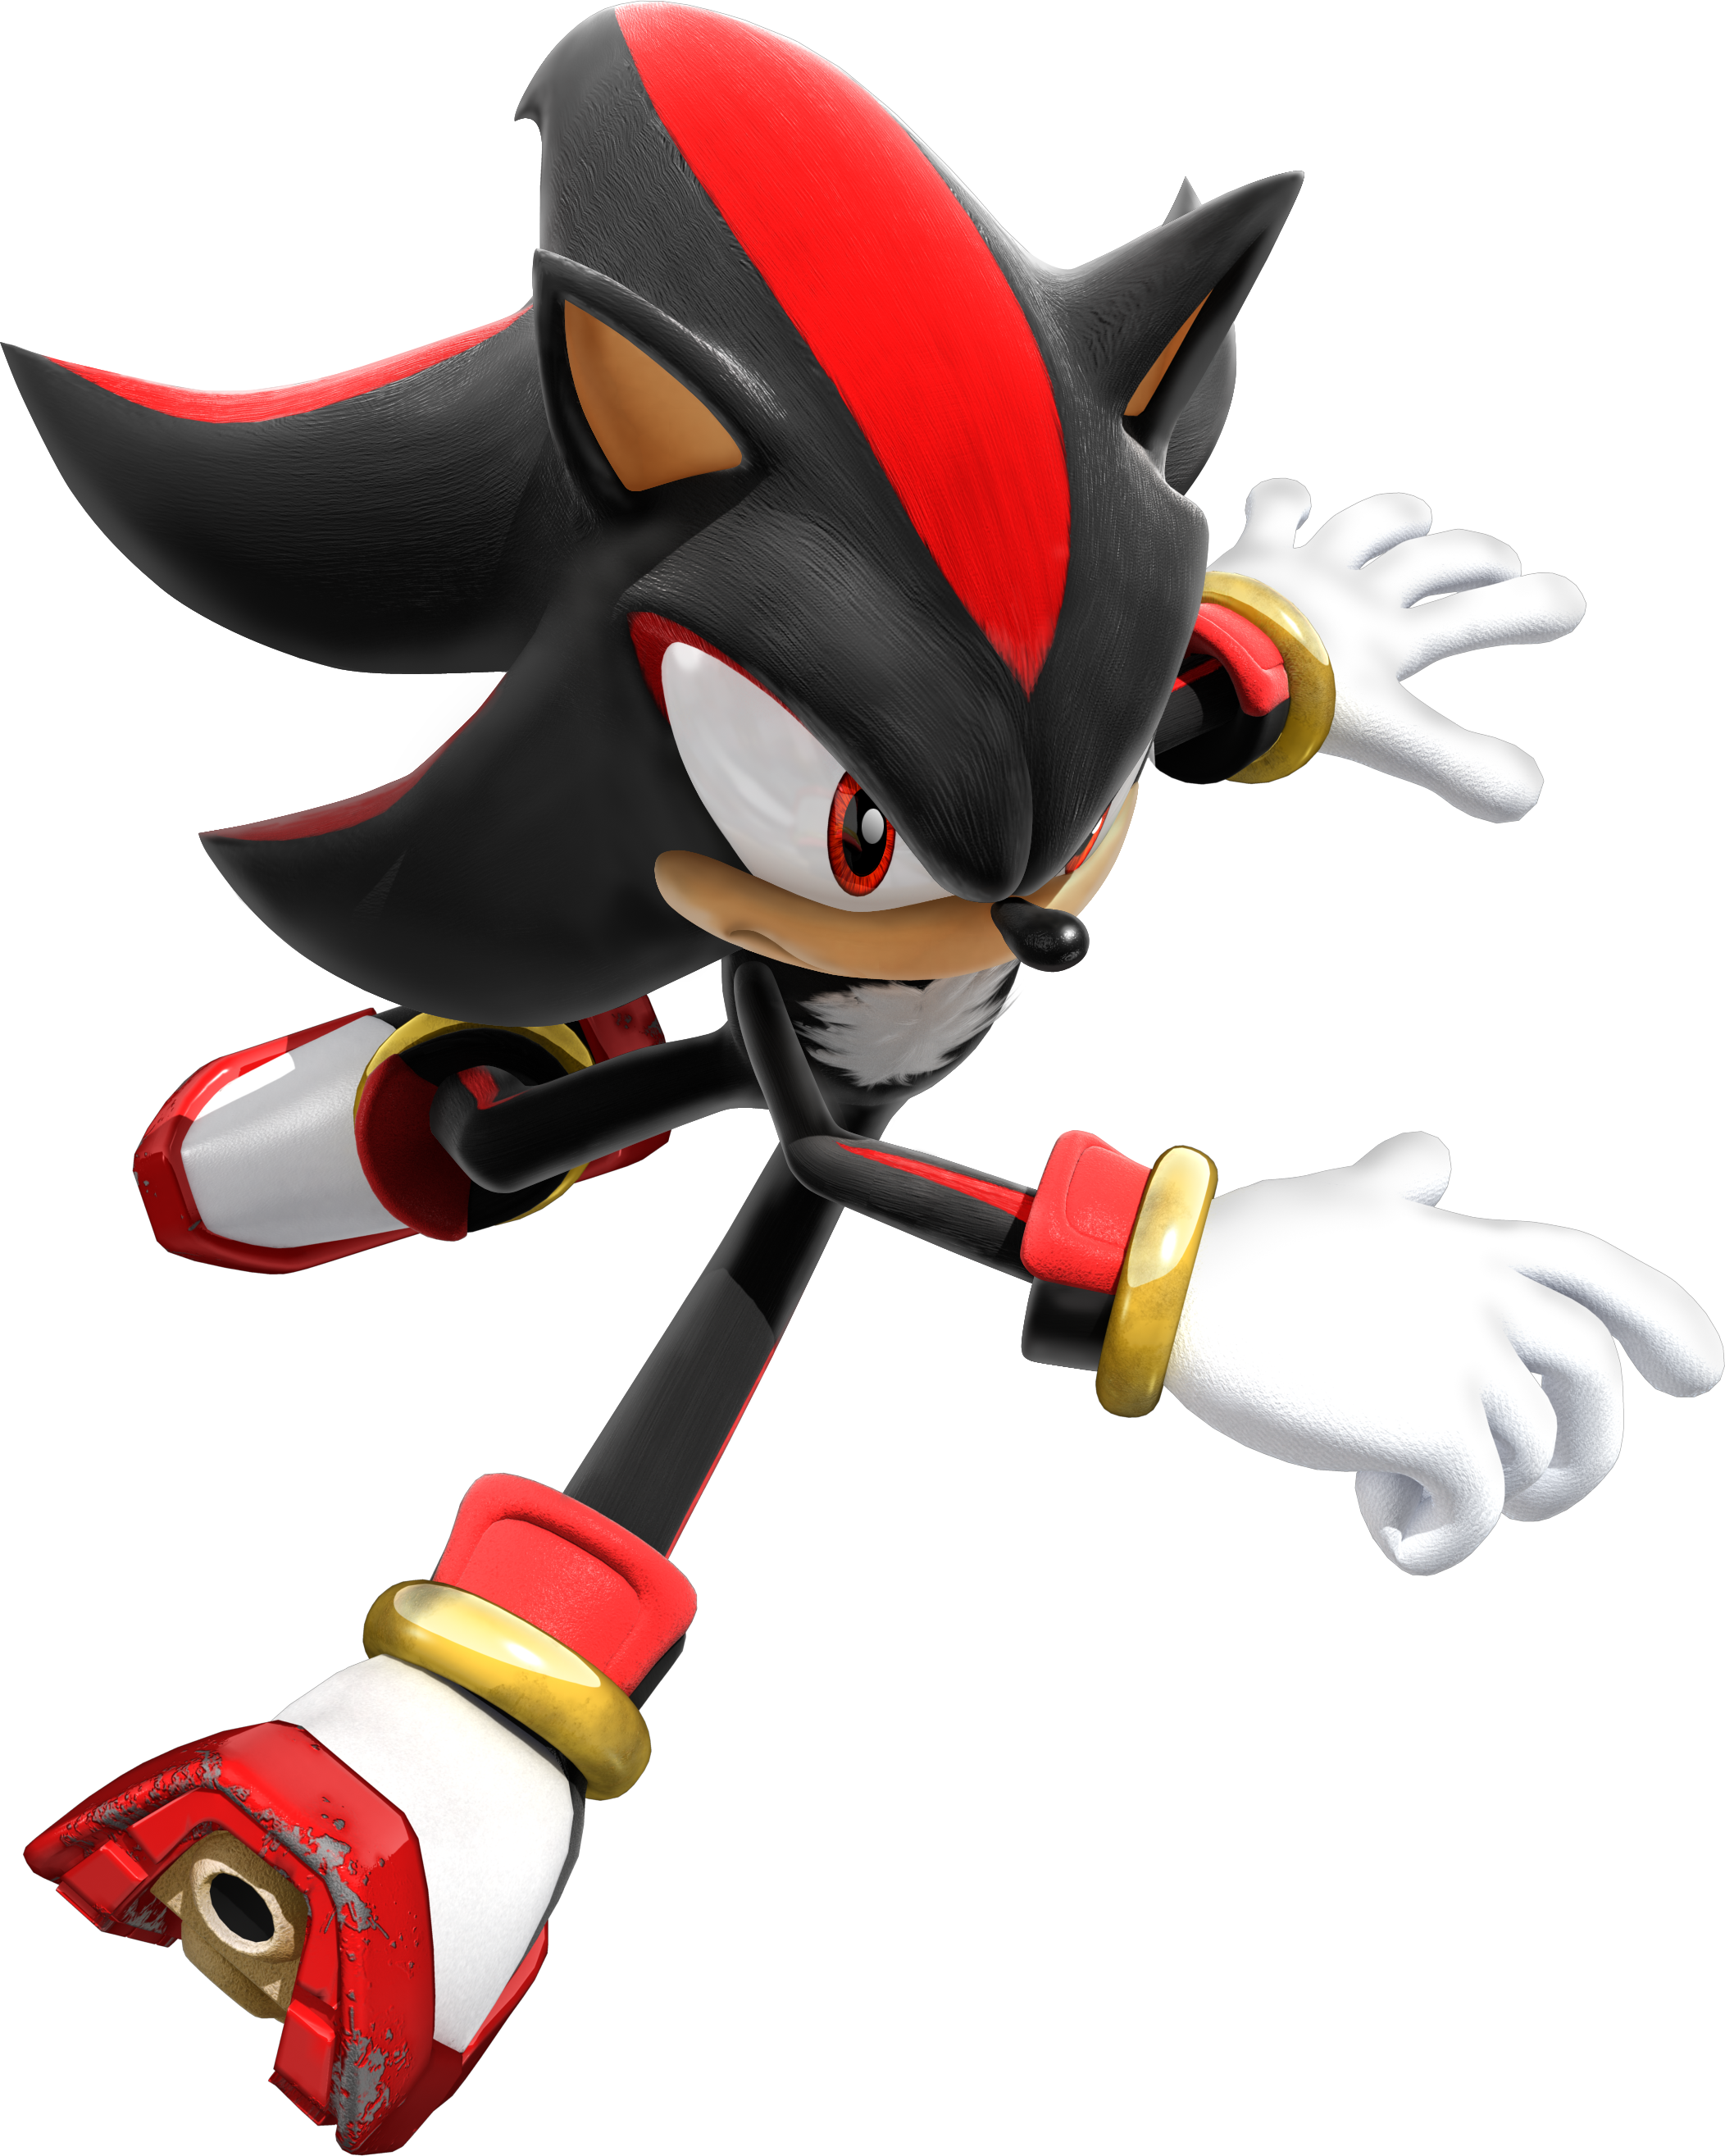 Image - Rivals Shadow the Hedgehog.png - Sonic News ...